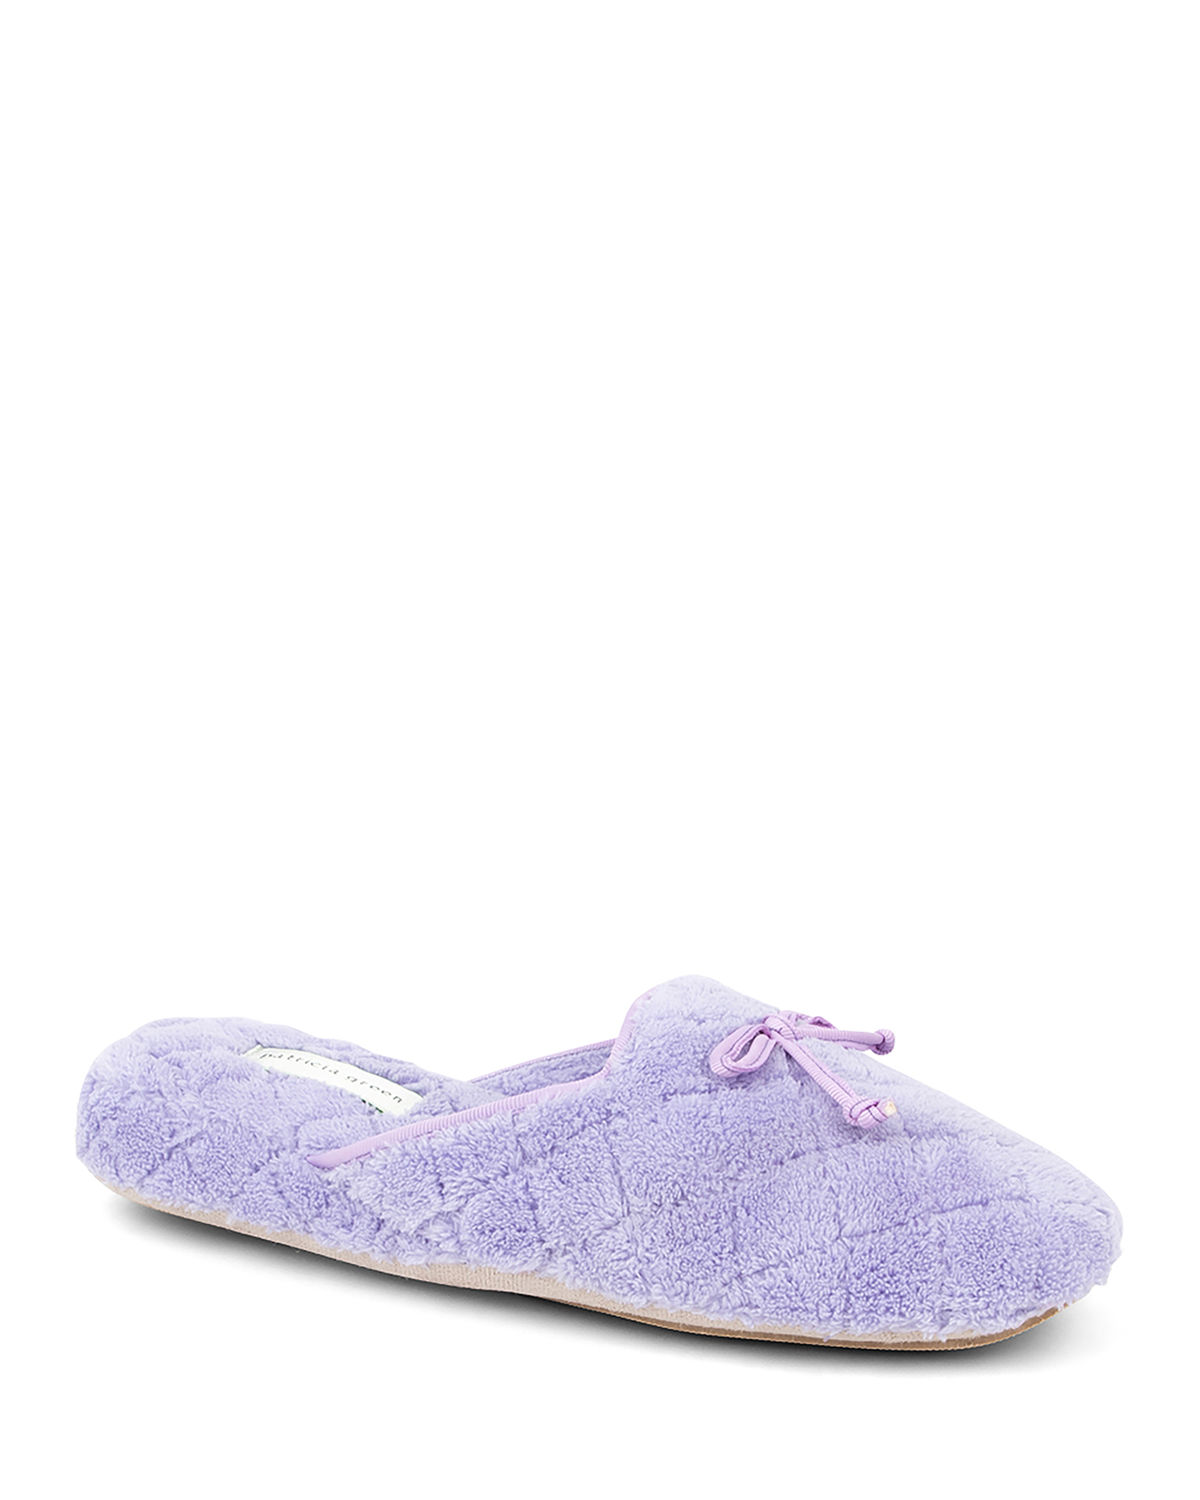 Chloe Microterry Slippers